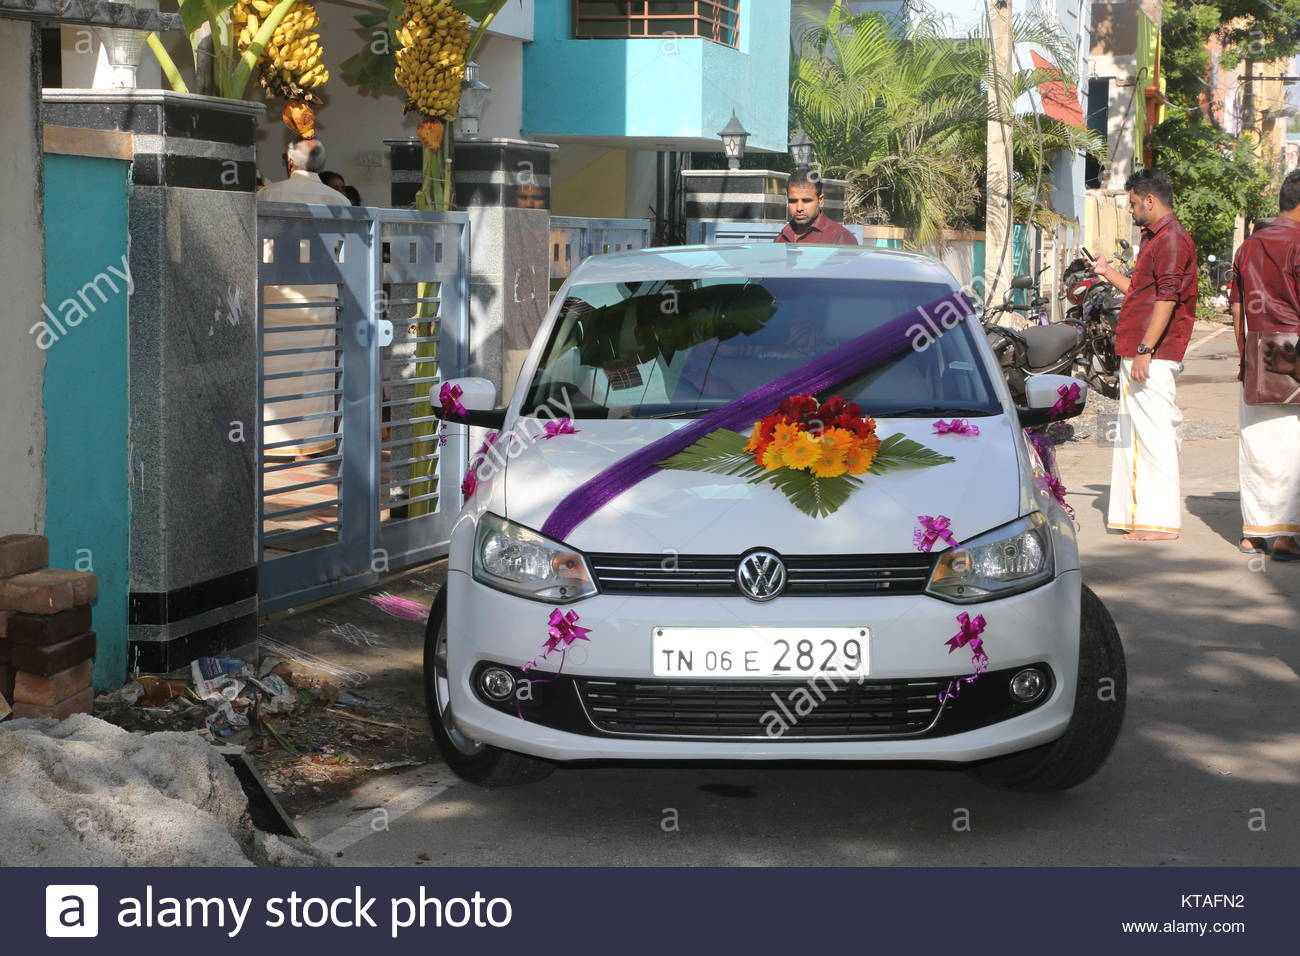 Hindu Wedding Indian Wedding Car Decoration Photos